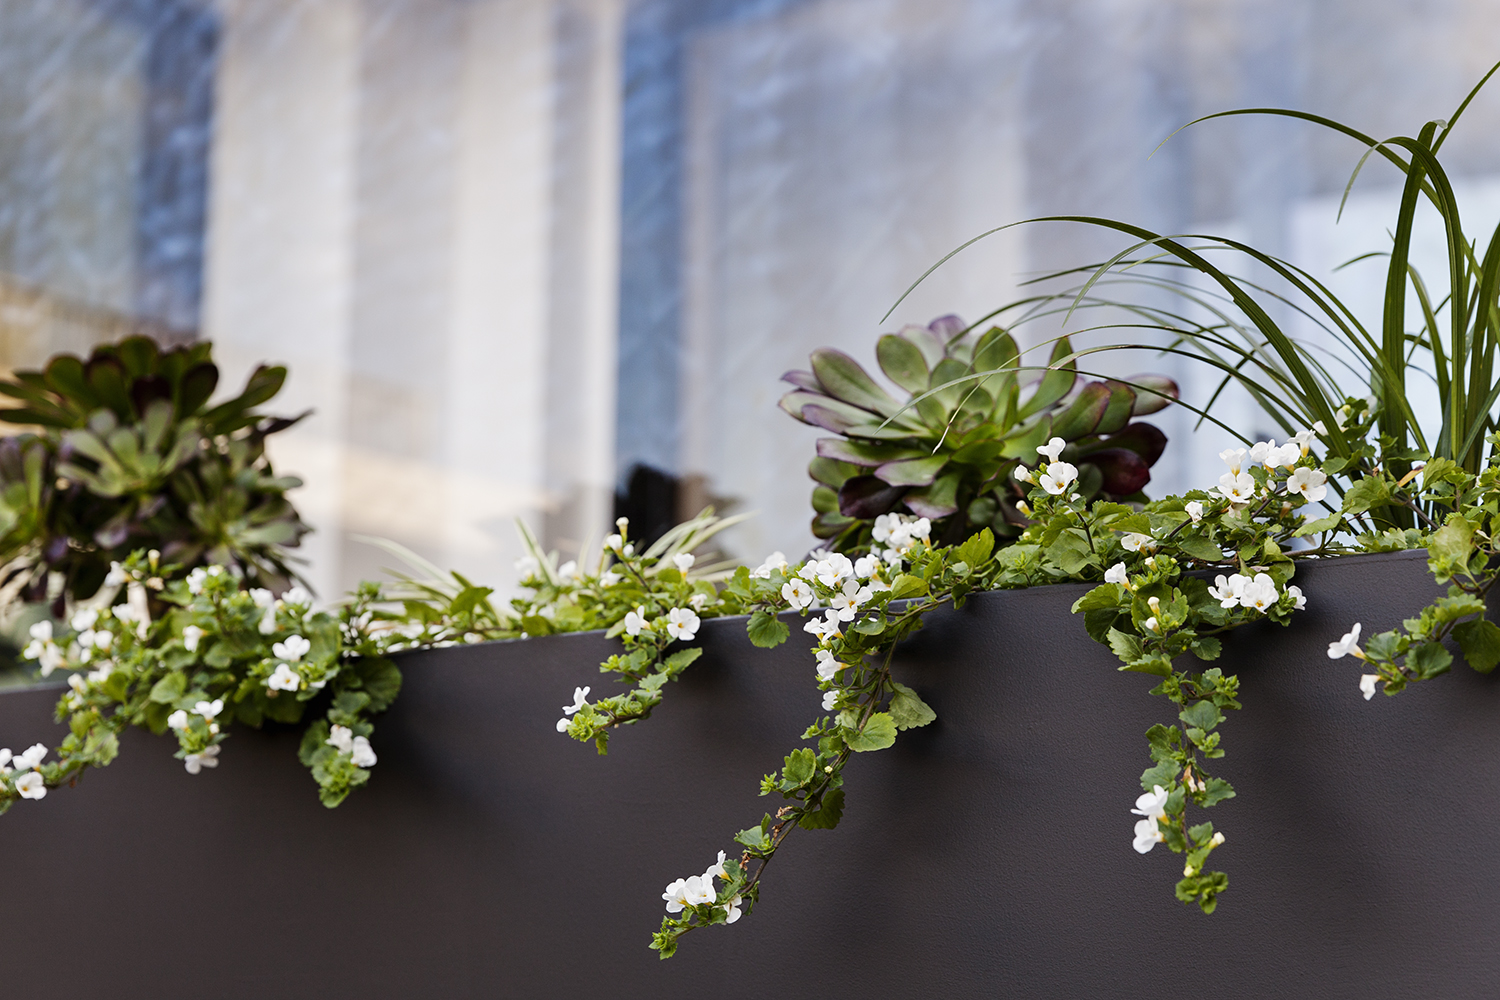 A detail photo shows spring green plantings and a powder-coated metal planter.